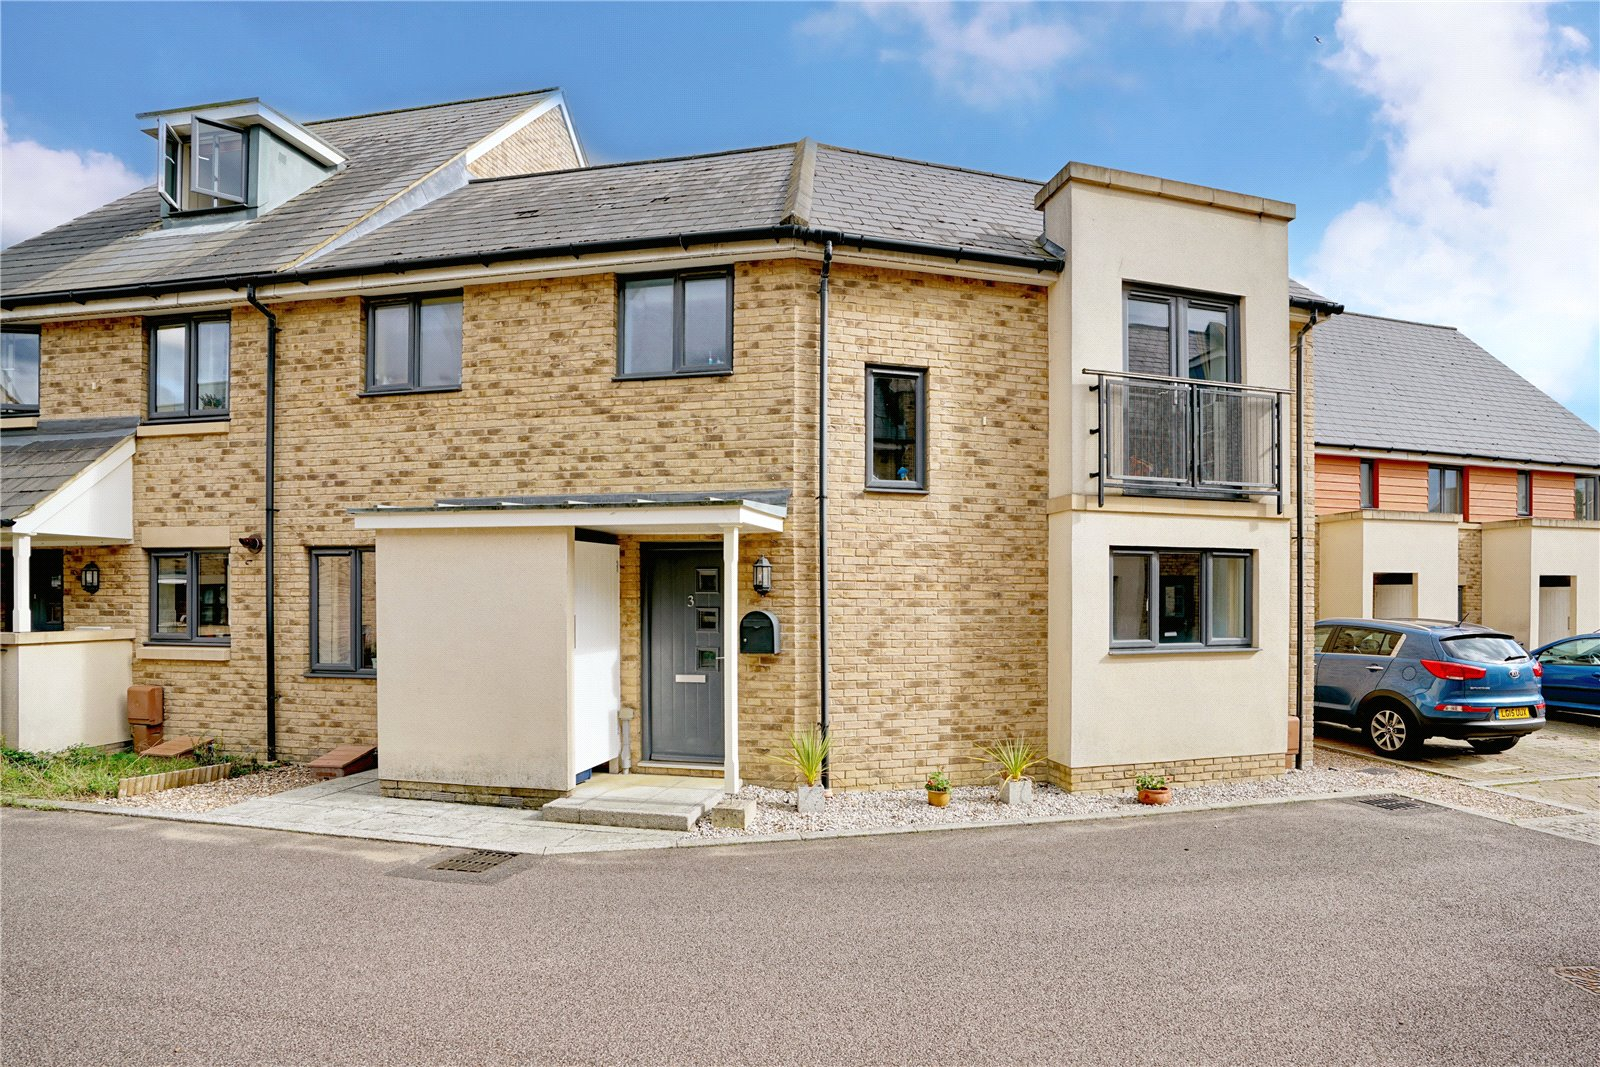 3 bed house for sale in St. Neots, PE19 6AT - Property Image 1